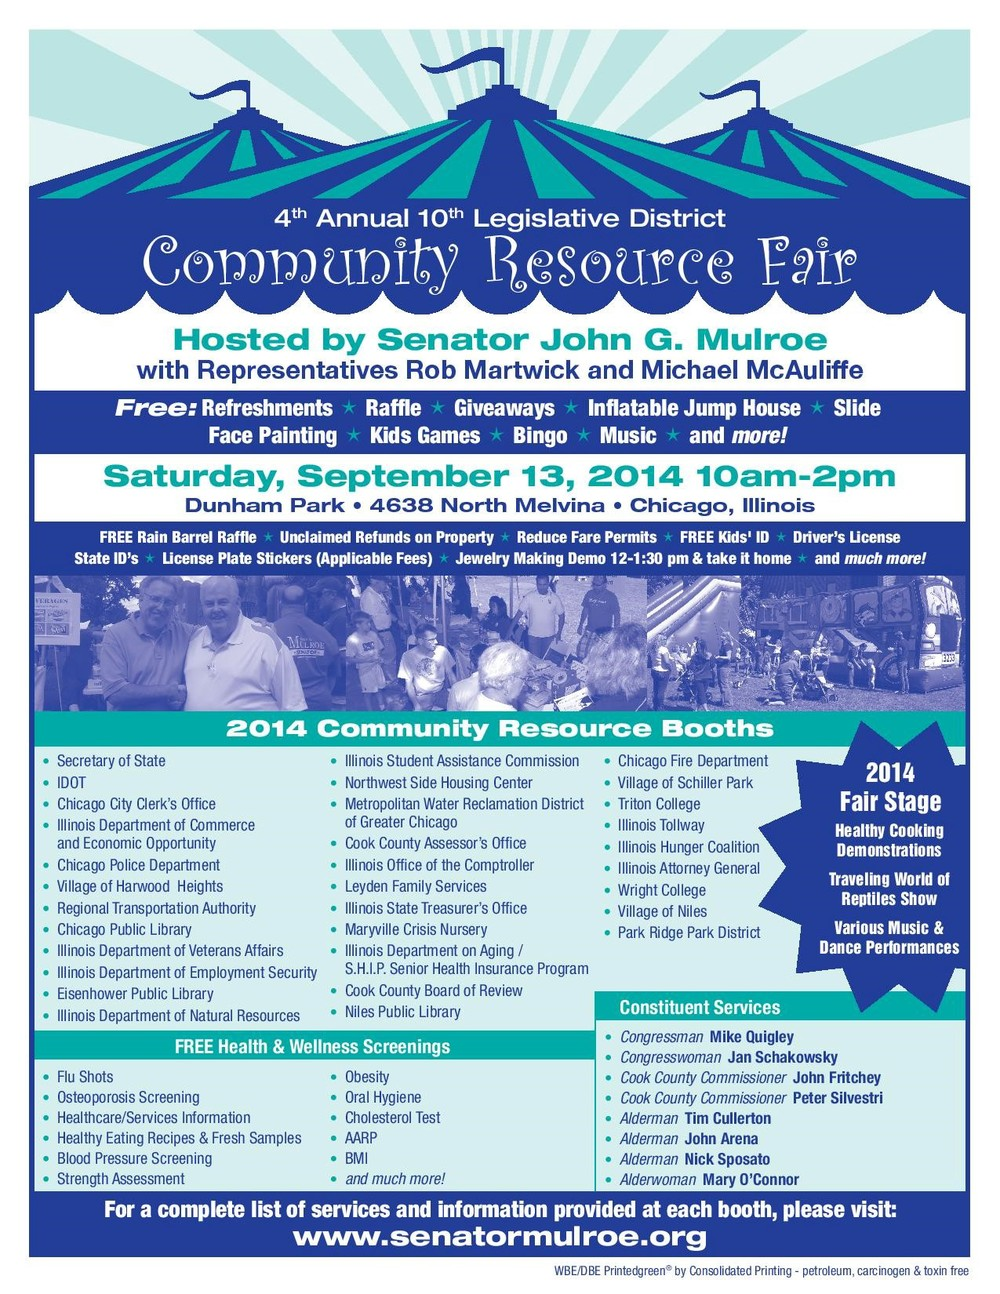 CommunityResourceFair09132014.jpg